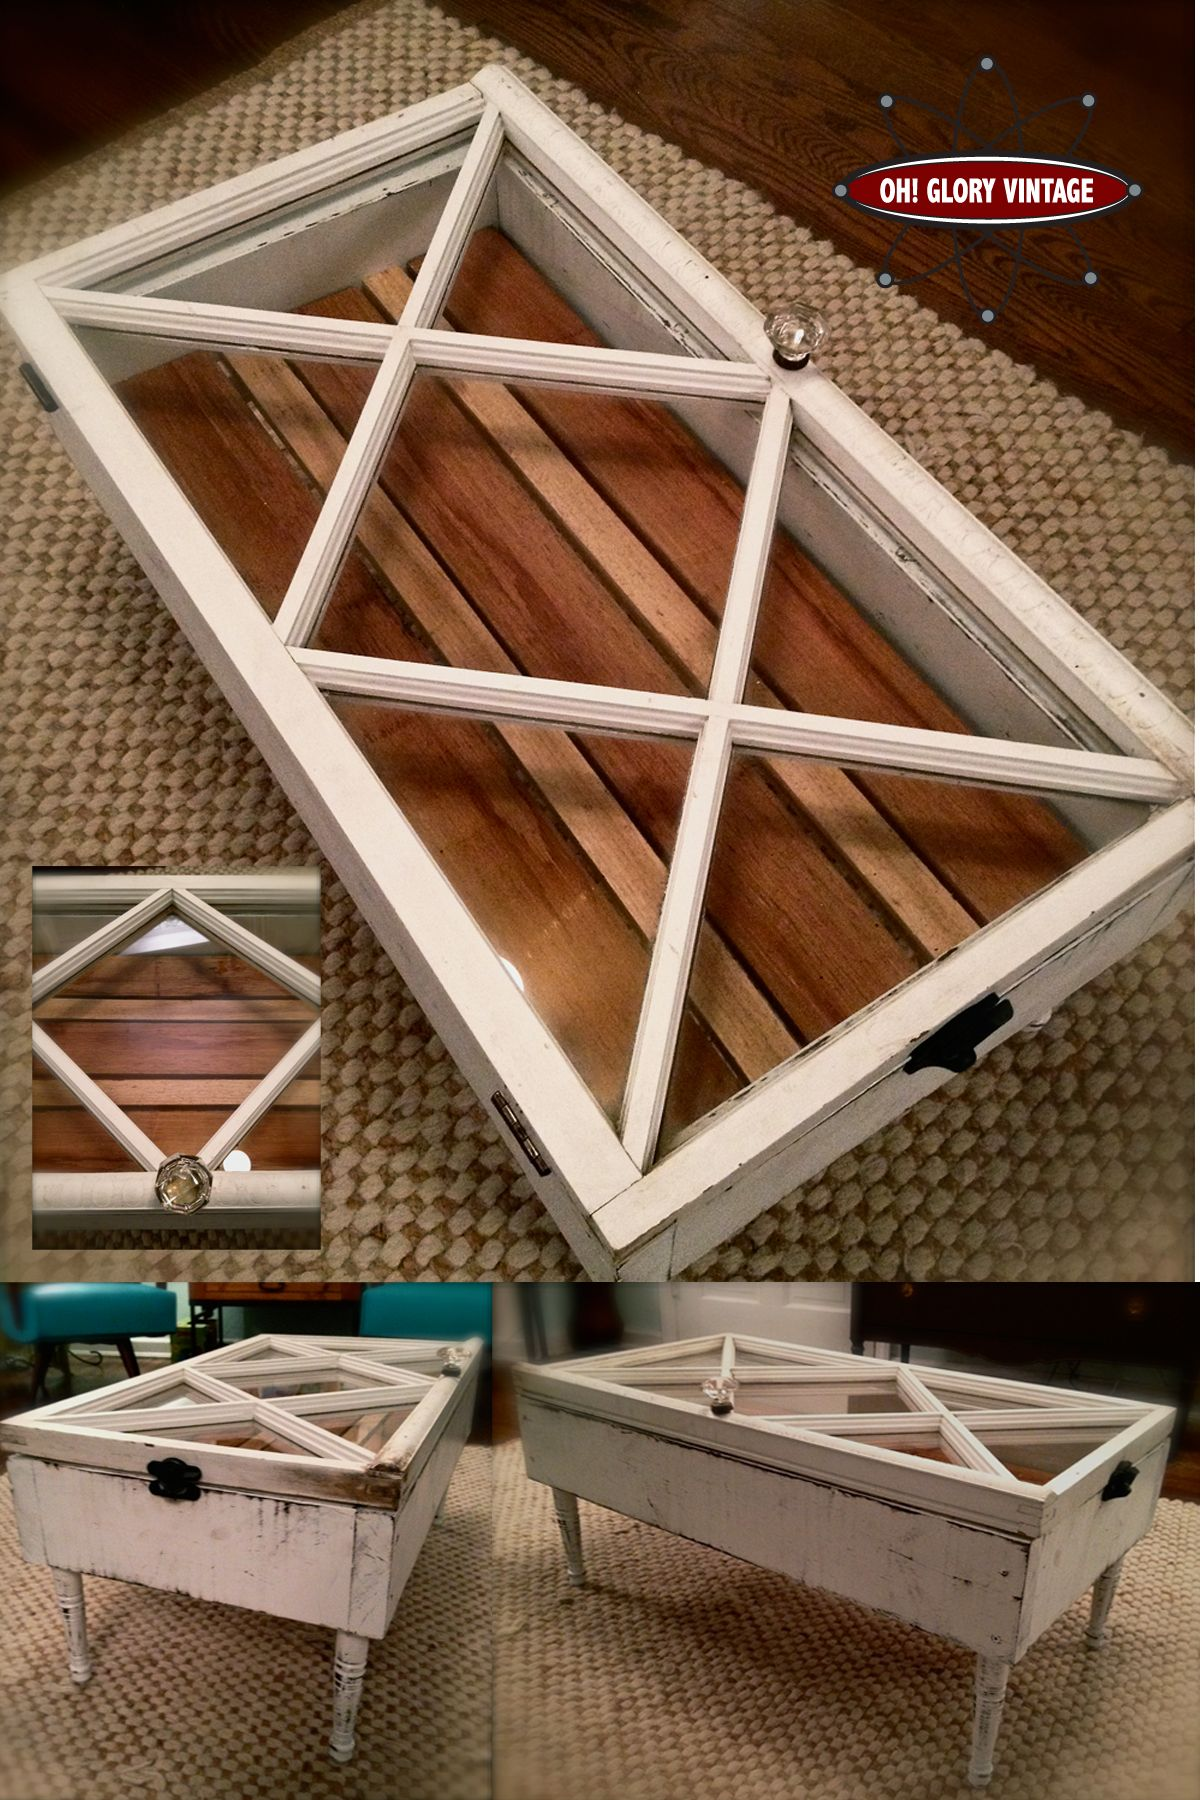 White Diamond Coffee table from Oh Glory Vintage Coffee table